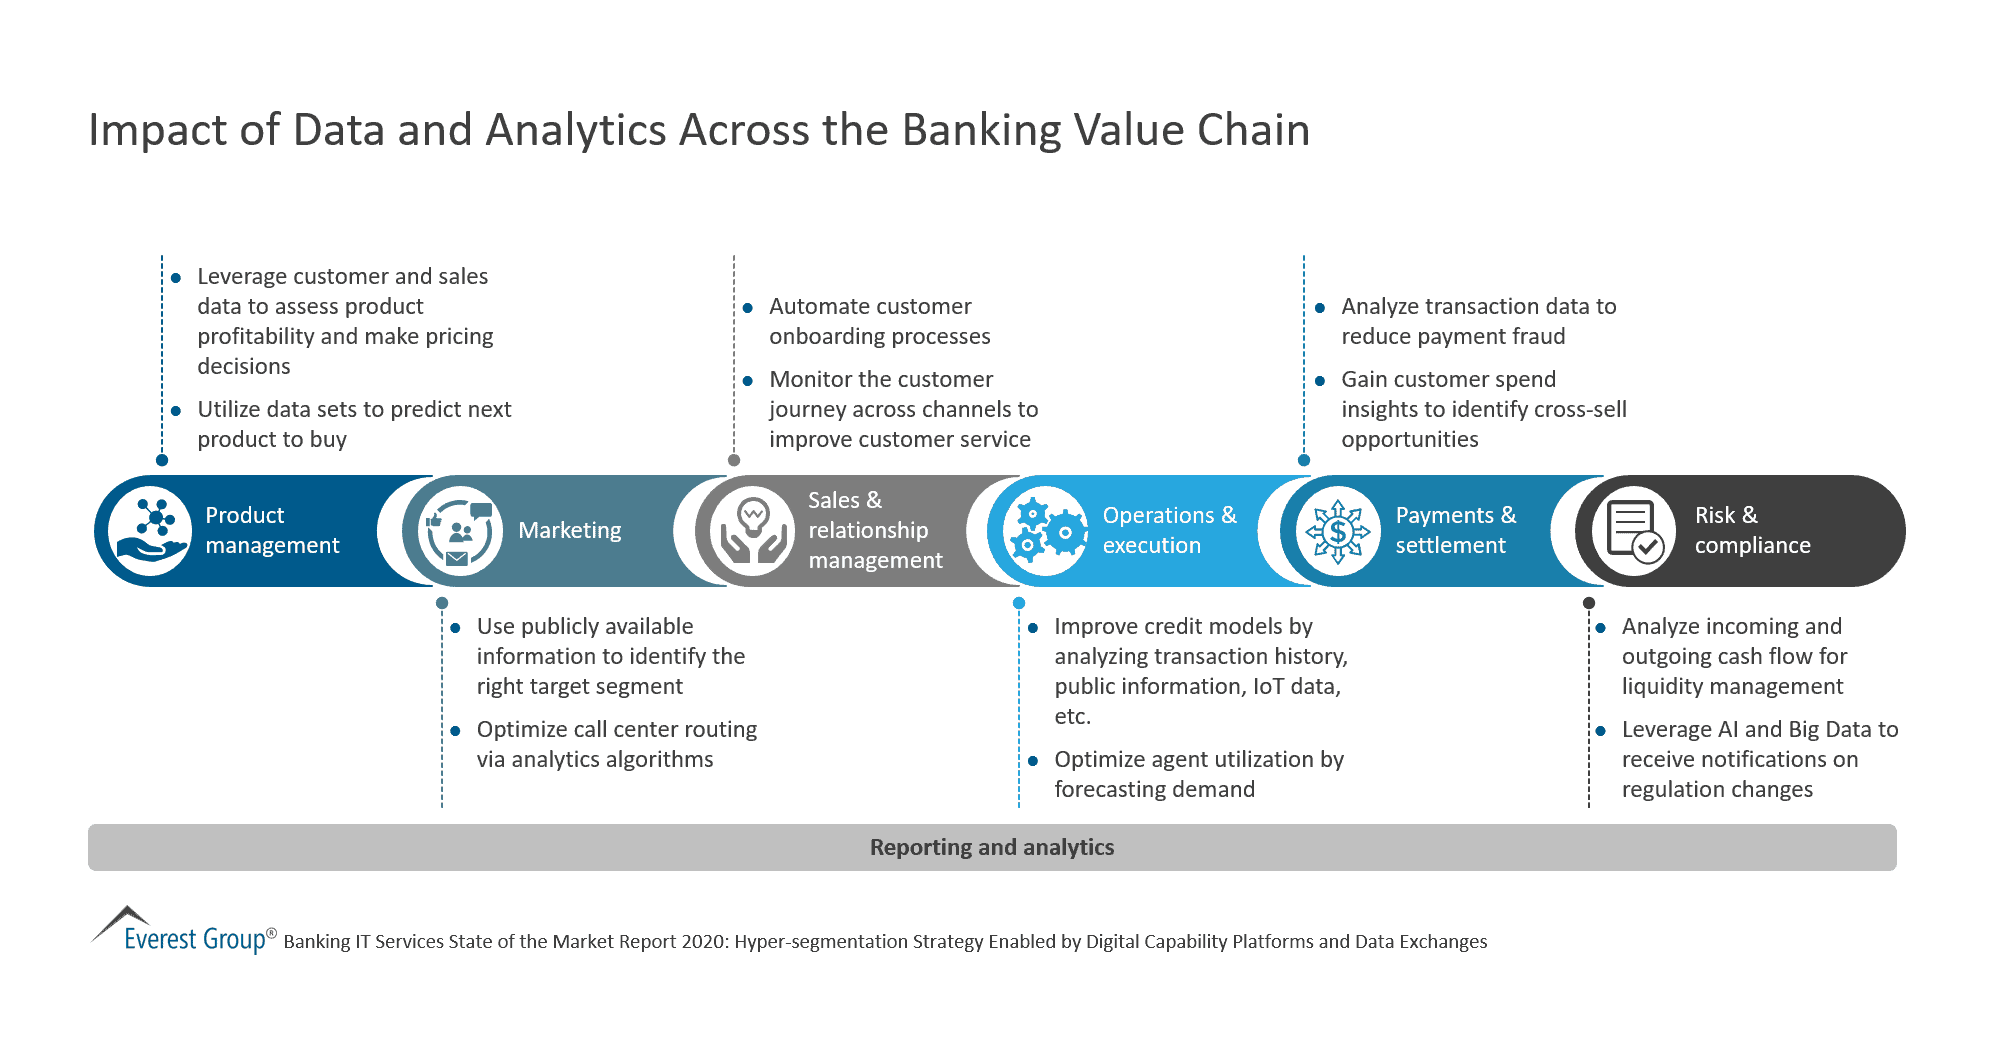 Impact of Data and Analytics Across the Banking Value Chain